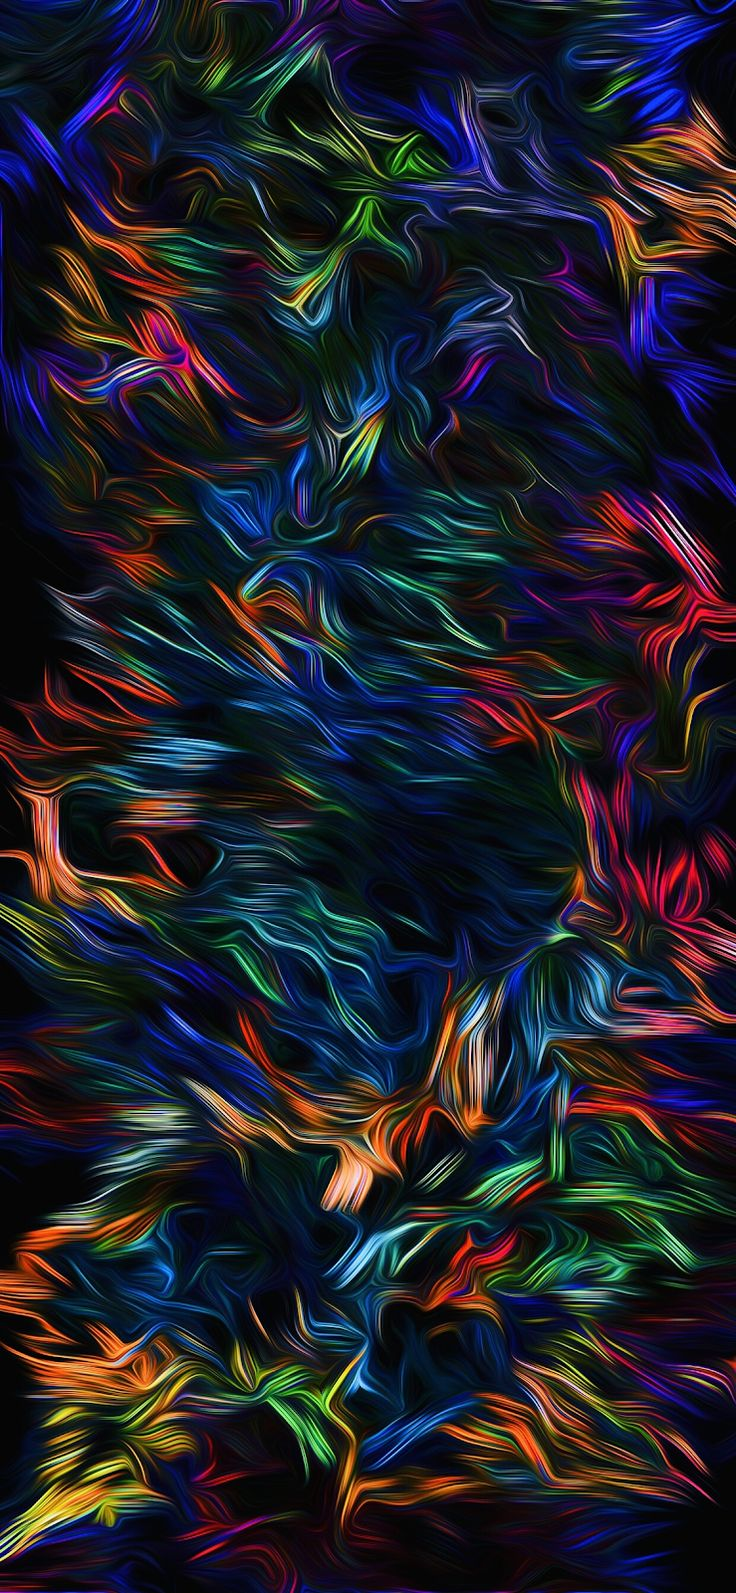 Abstracted ART (iPhone X/XS/XSMAX/XR) Абстрактные фоны